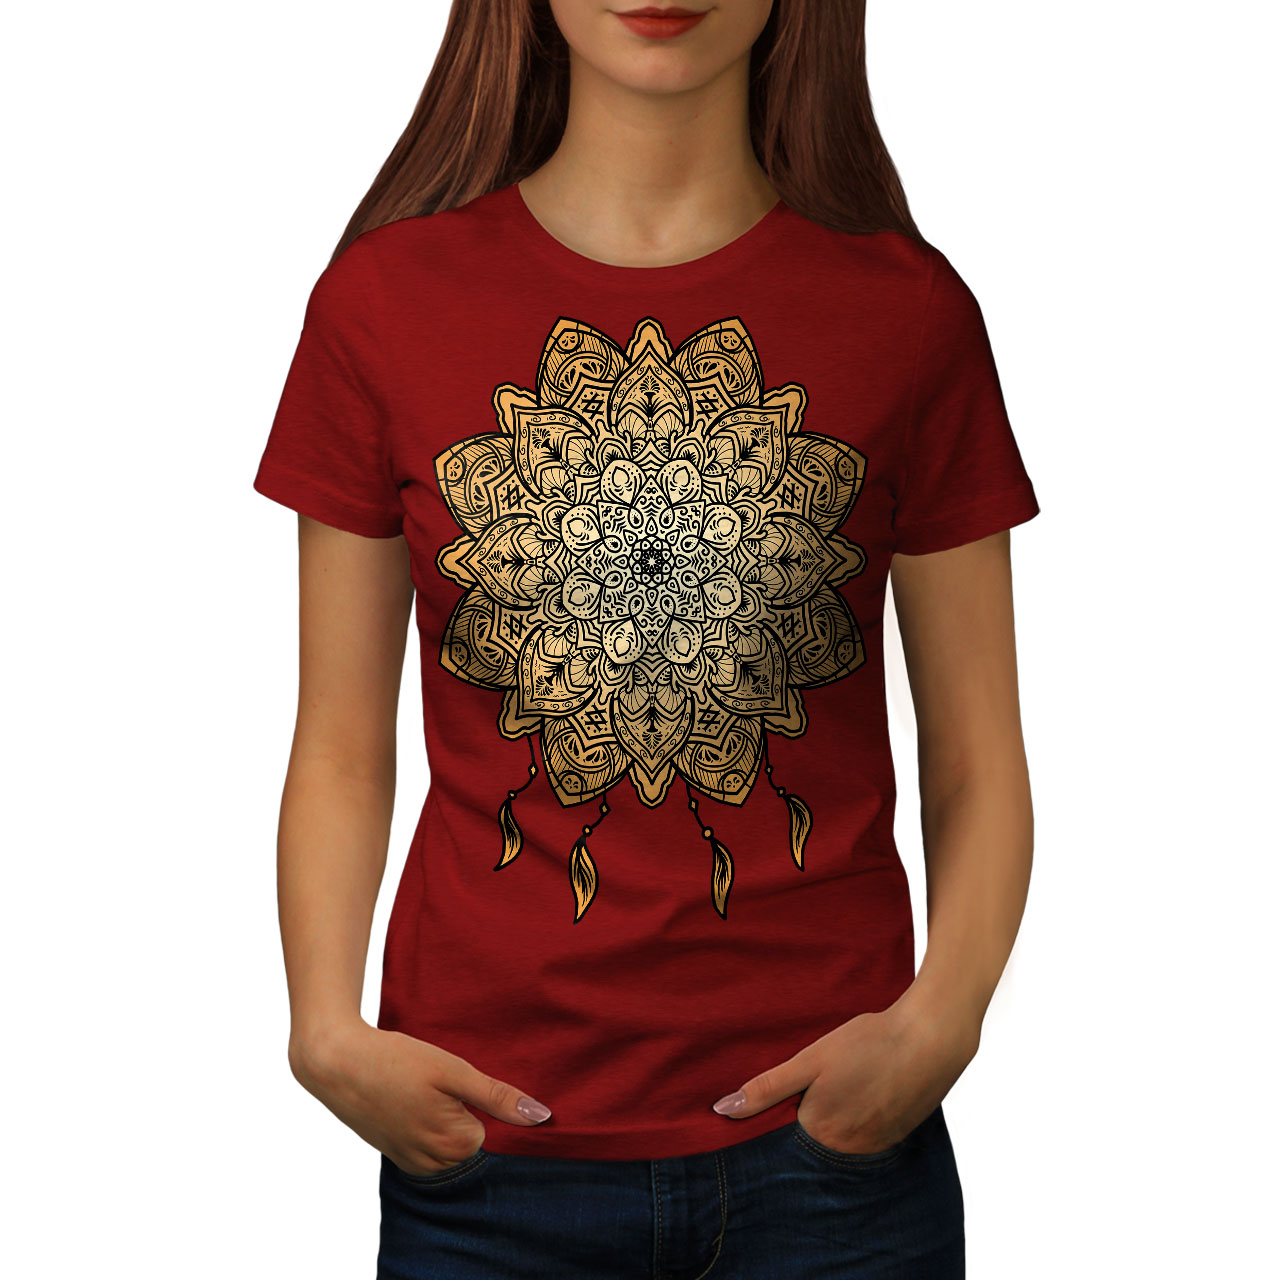 Wellcoda-Mandala-Yoga-Womens-T-shirt-Spiritual-Casual-Design-Printed-Tee thumbnail 9